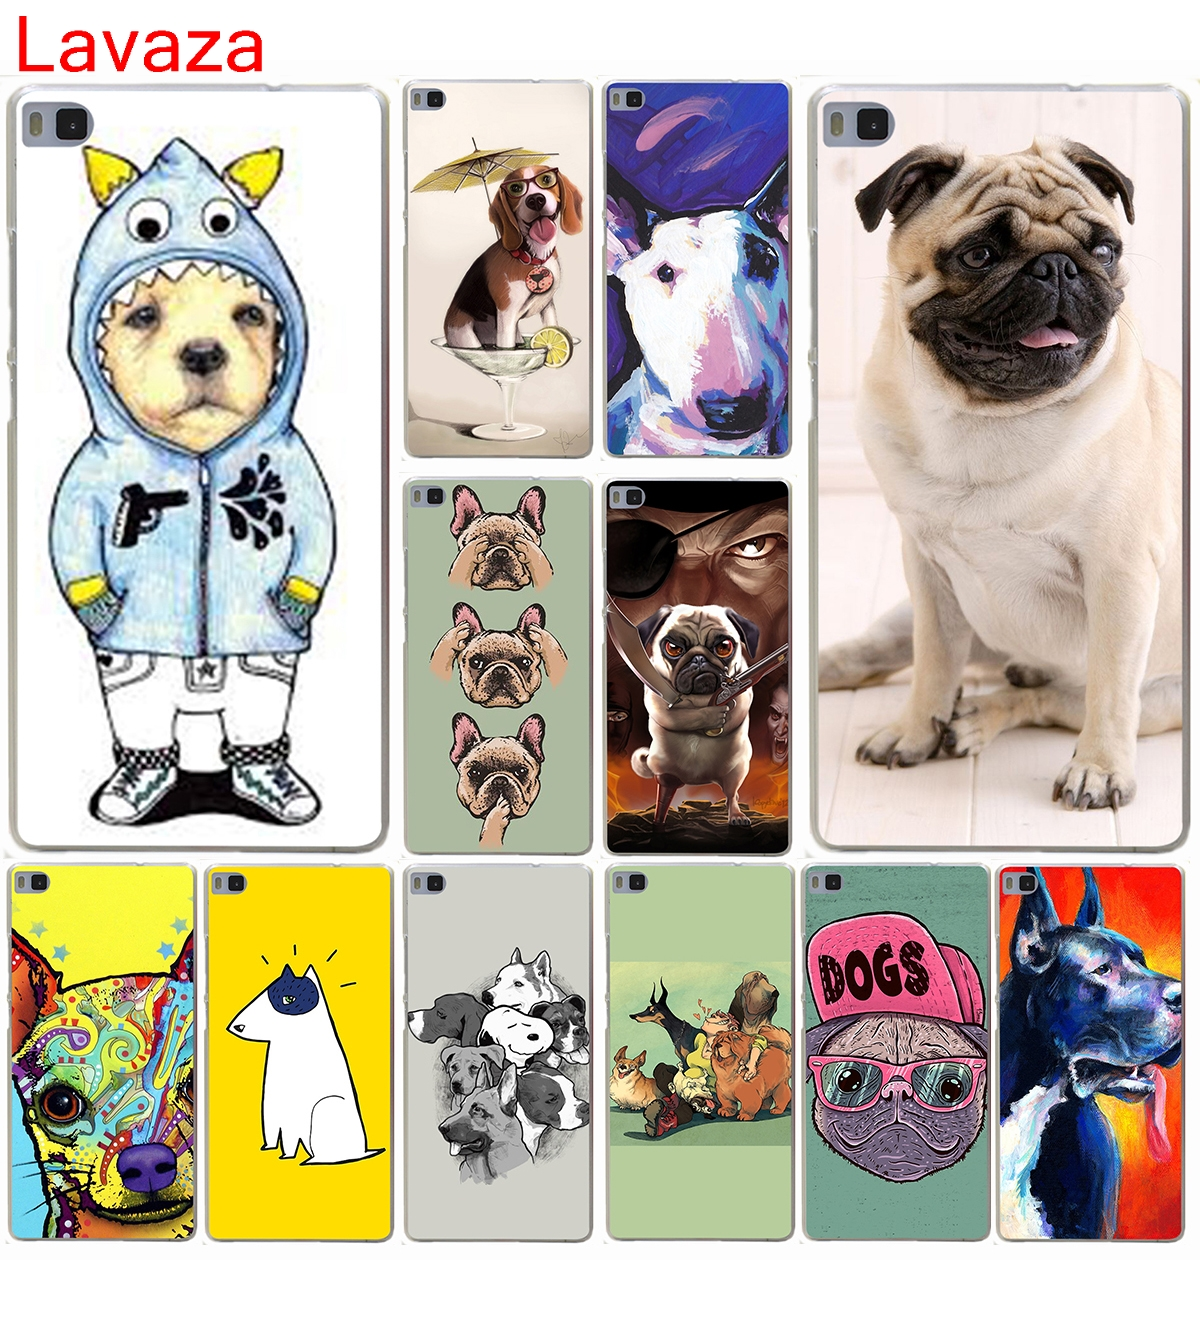 Lavaza Tattooed Bullterrier Cute dog Biaoqing Hard Case for Huawei P10 P9 P8 Lite P10 P9 ...